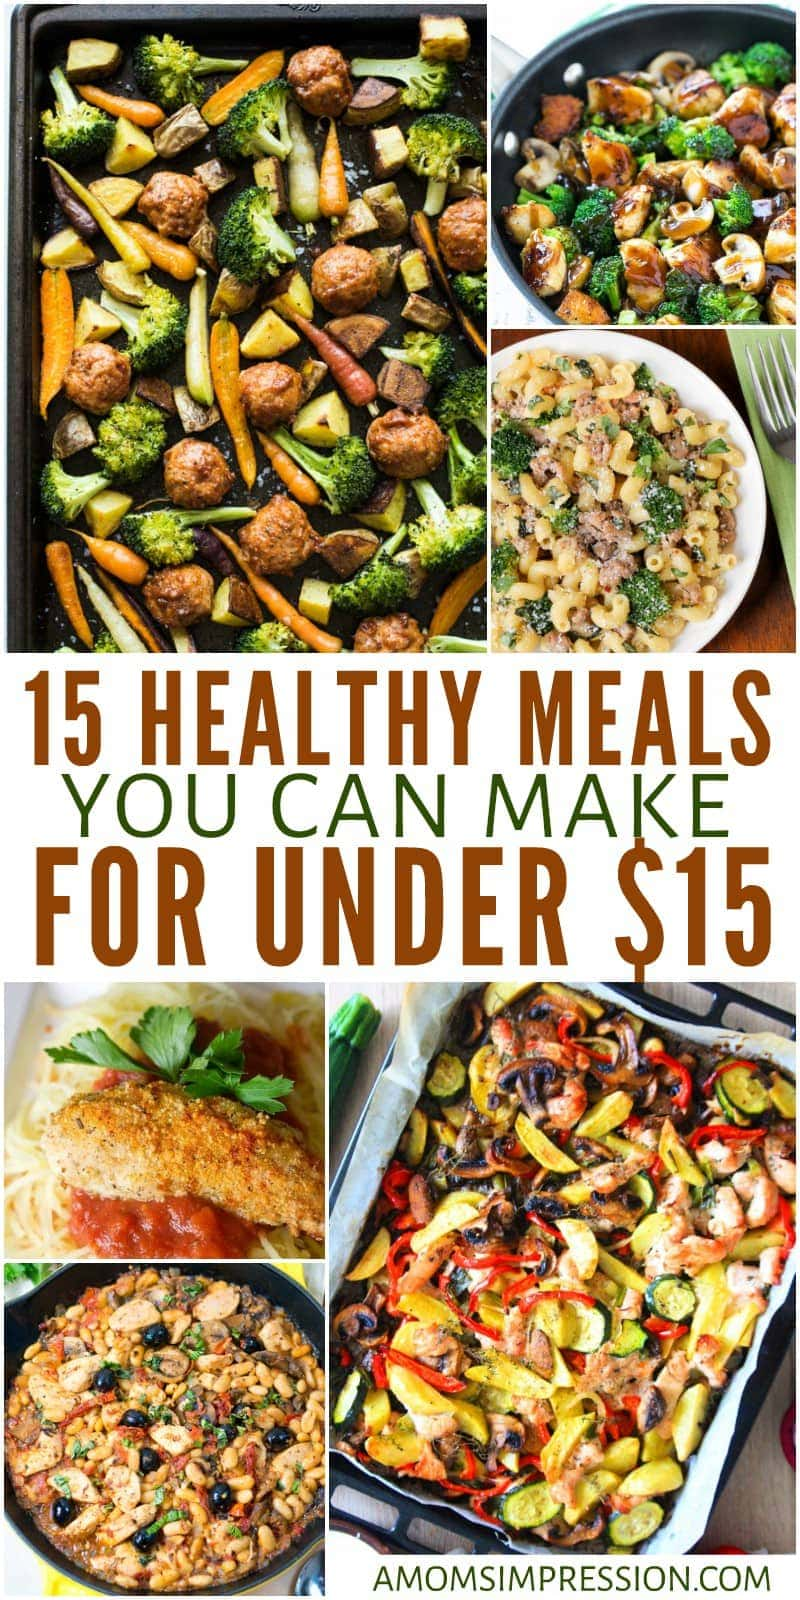 Eating healthy doesn't have to break the bank. These easy 15 healthy meals on a budget can all be made for under $15 for your family. This list includes vegetarian options and is great for menu planning.